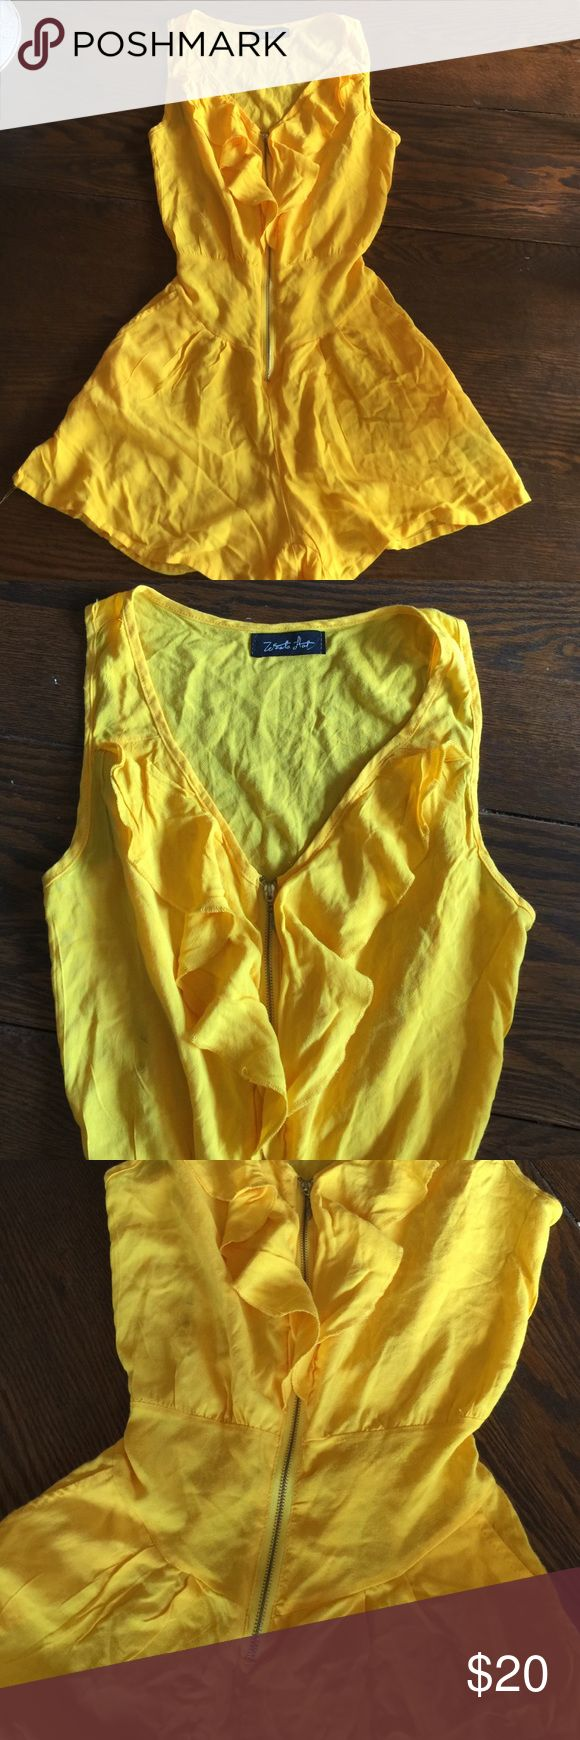 CUTE Bright Sunshiny Yellow Ruffled Romper NEAT ☀️ Super neat!! Great pre loved condition ❤️ Bright sunshiny yellow romper!! This is sleeveless- tank top style, zips up the front, has a Ruffled design down the front, comes together more fitted @ the waist & has a giving stretch on the backside waist. This is a more fitted @ the top 1/2 & more baggier Style shorts. The shorts have a cute small pleated design & pockets!! Super comfy , super pretty, super stylish & just neat neat!! Made by…